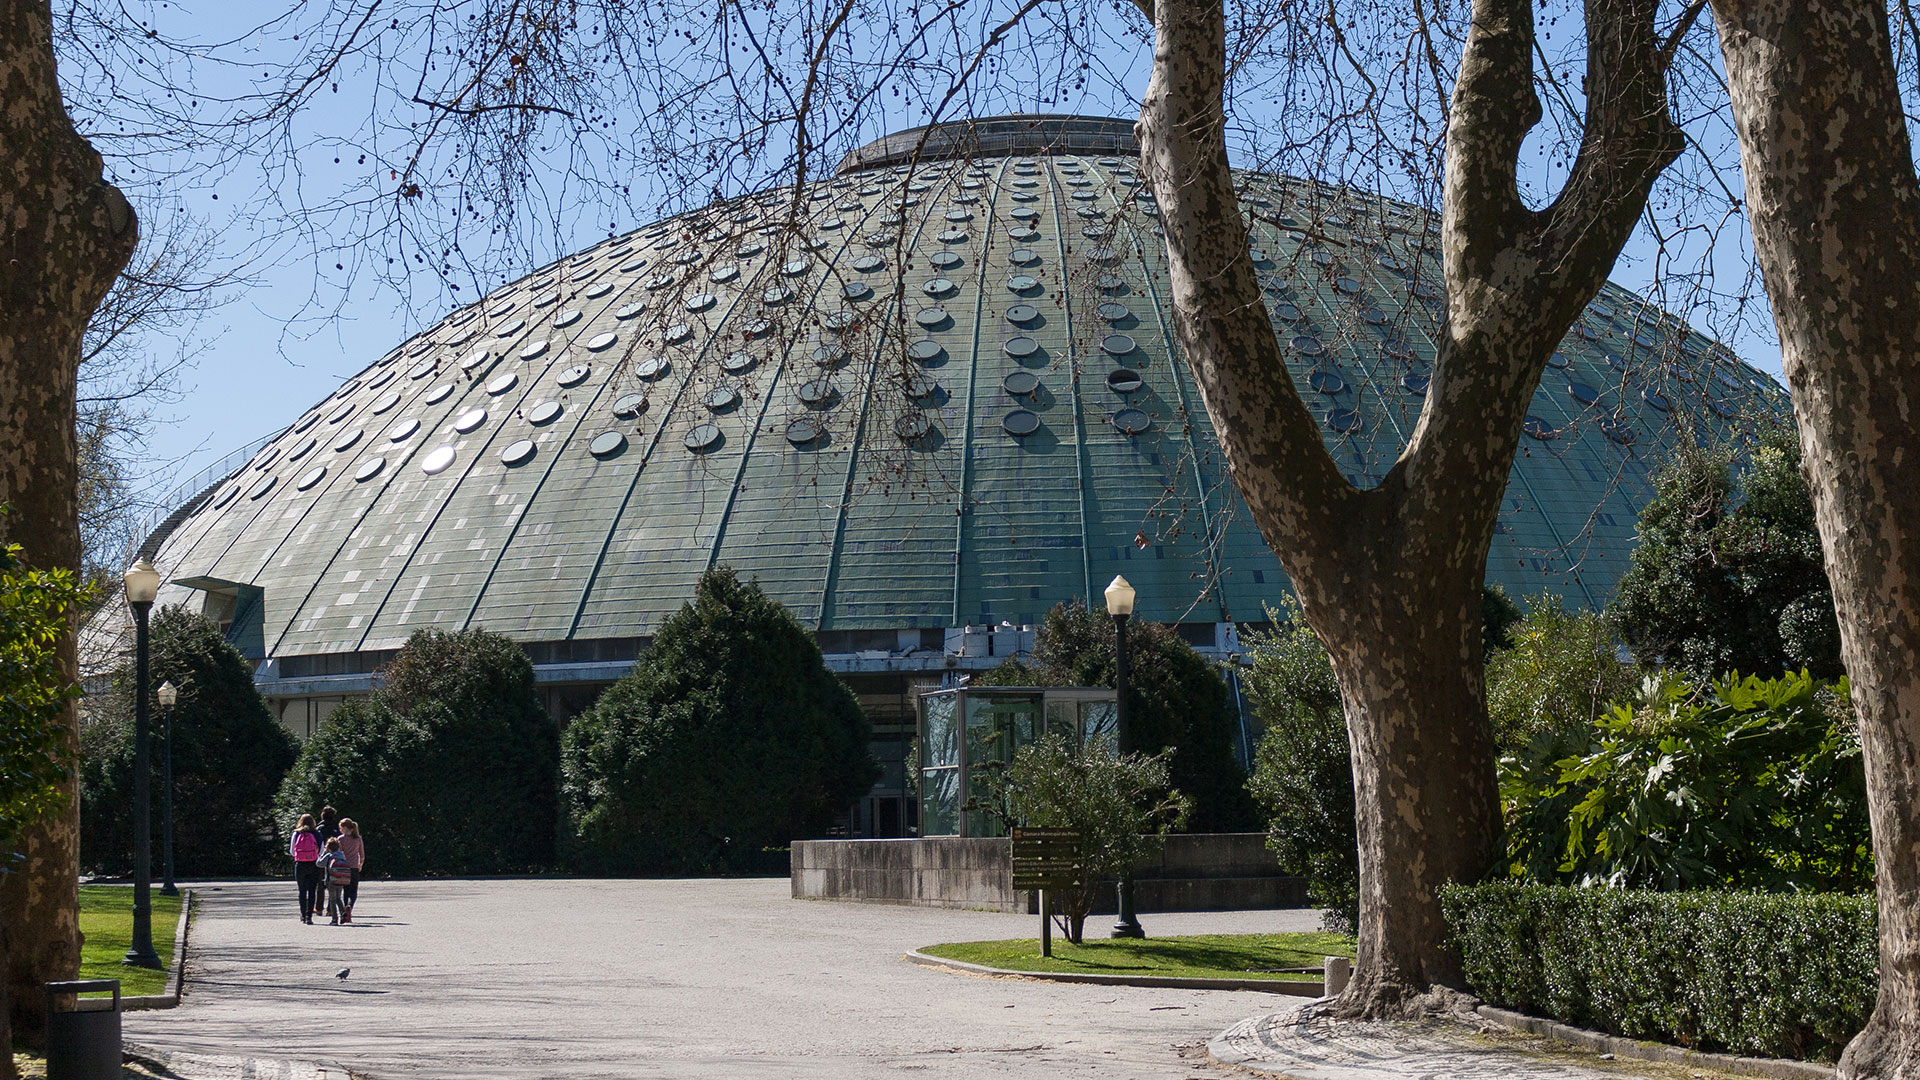 Palácio de Cristal (Porto) | Off the map and off the plan in Porto.